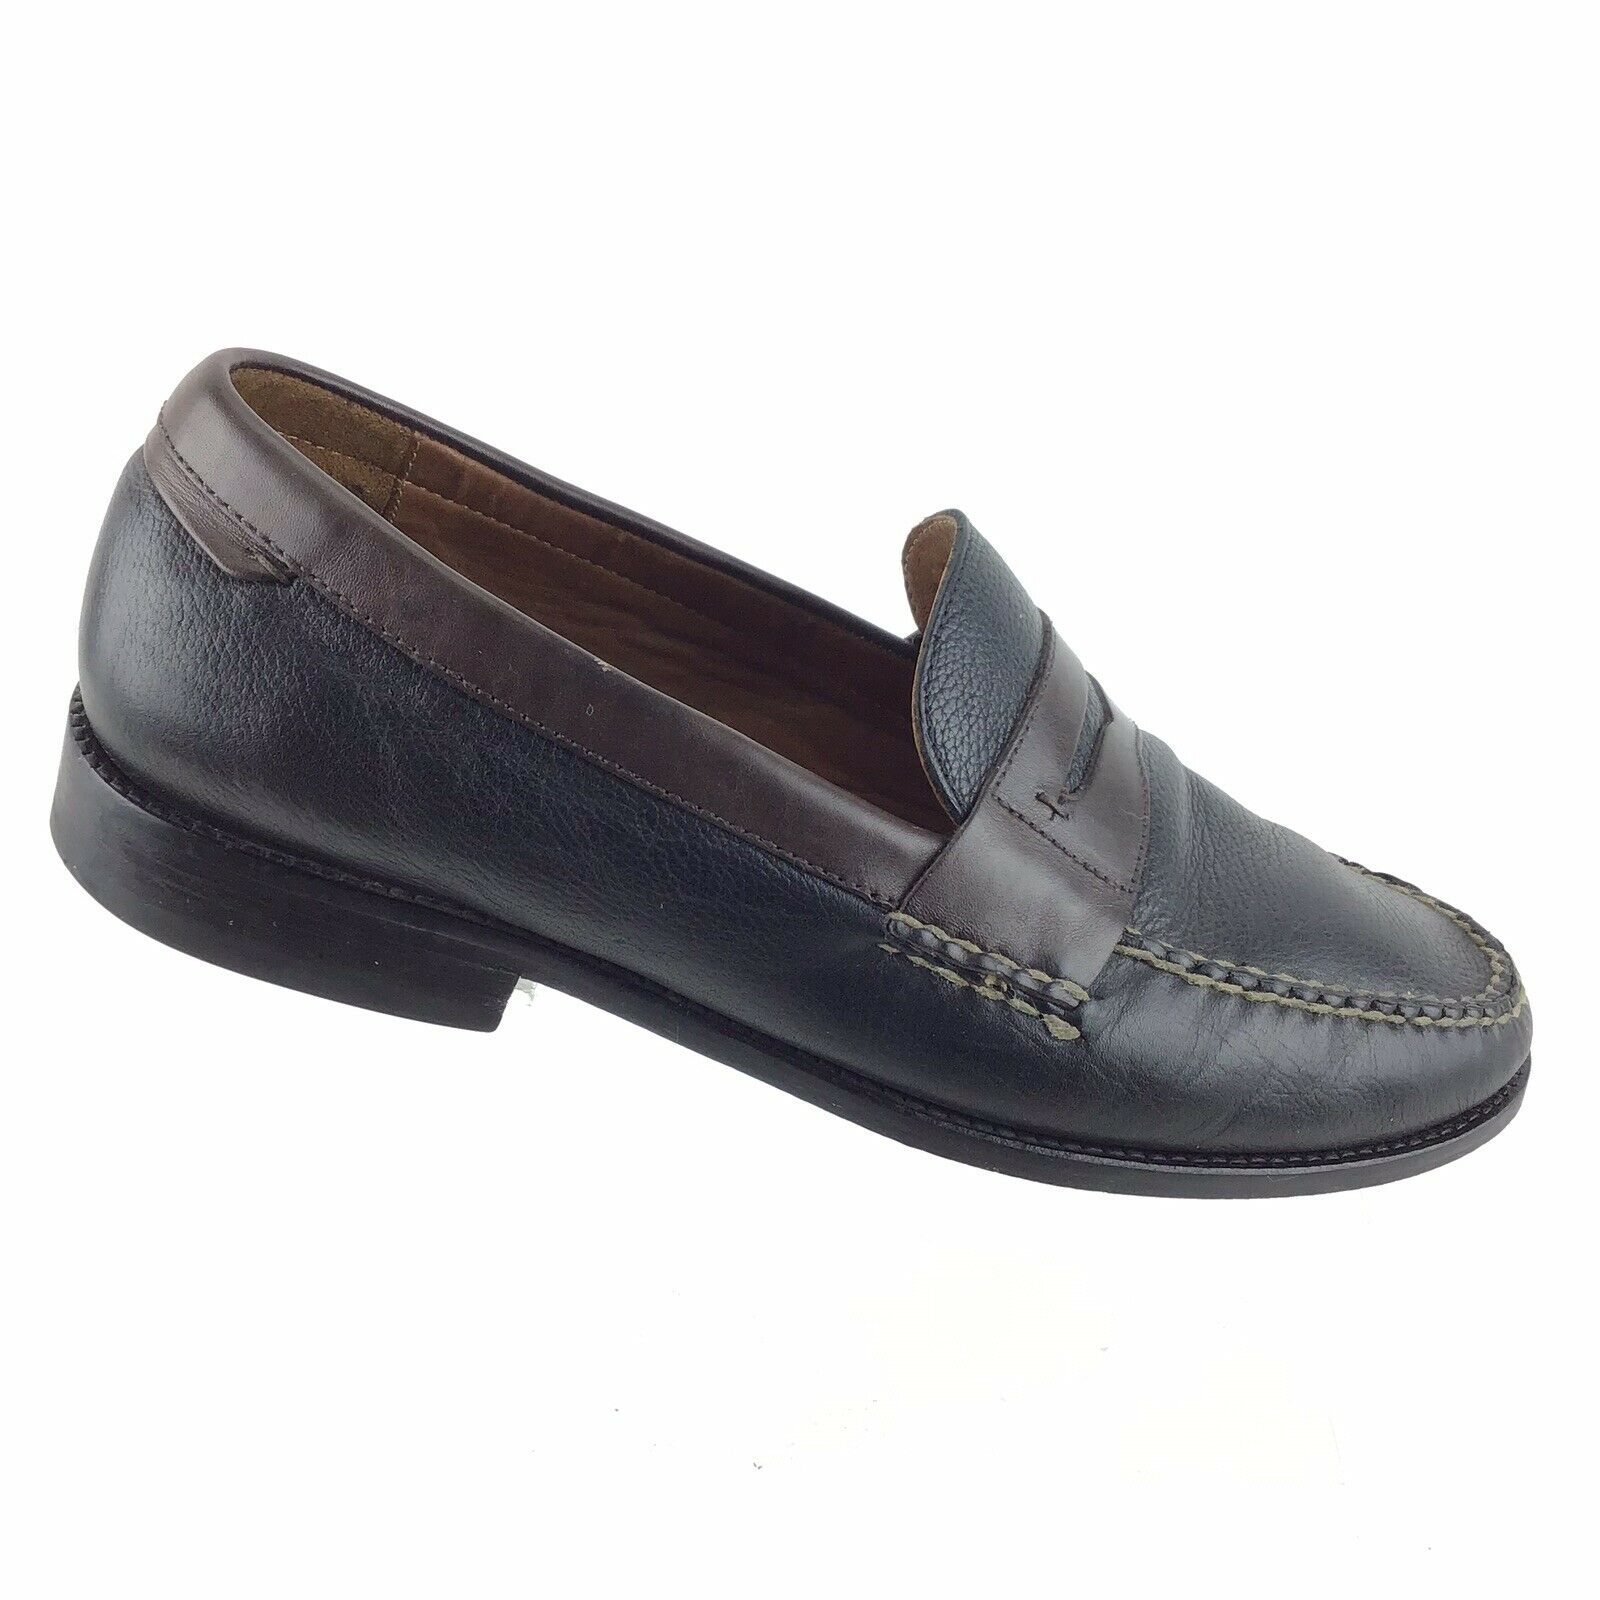 Johnston & Murphy Brown  bluee Penny Loafer Leather Moc Toe Men 10.5 M shoes B2